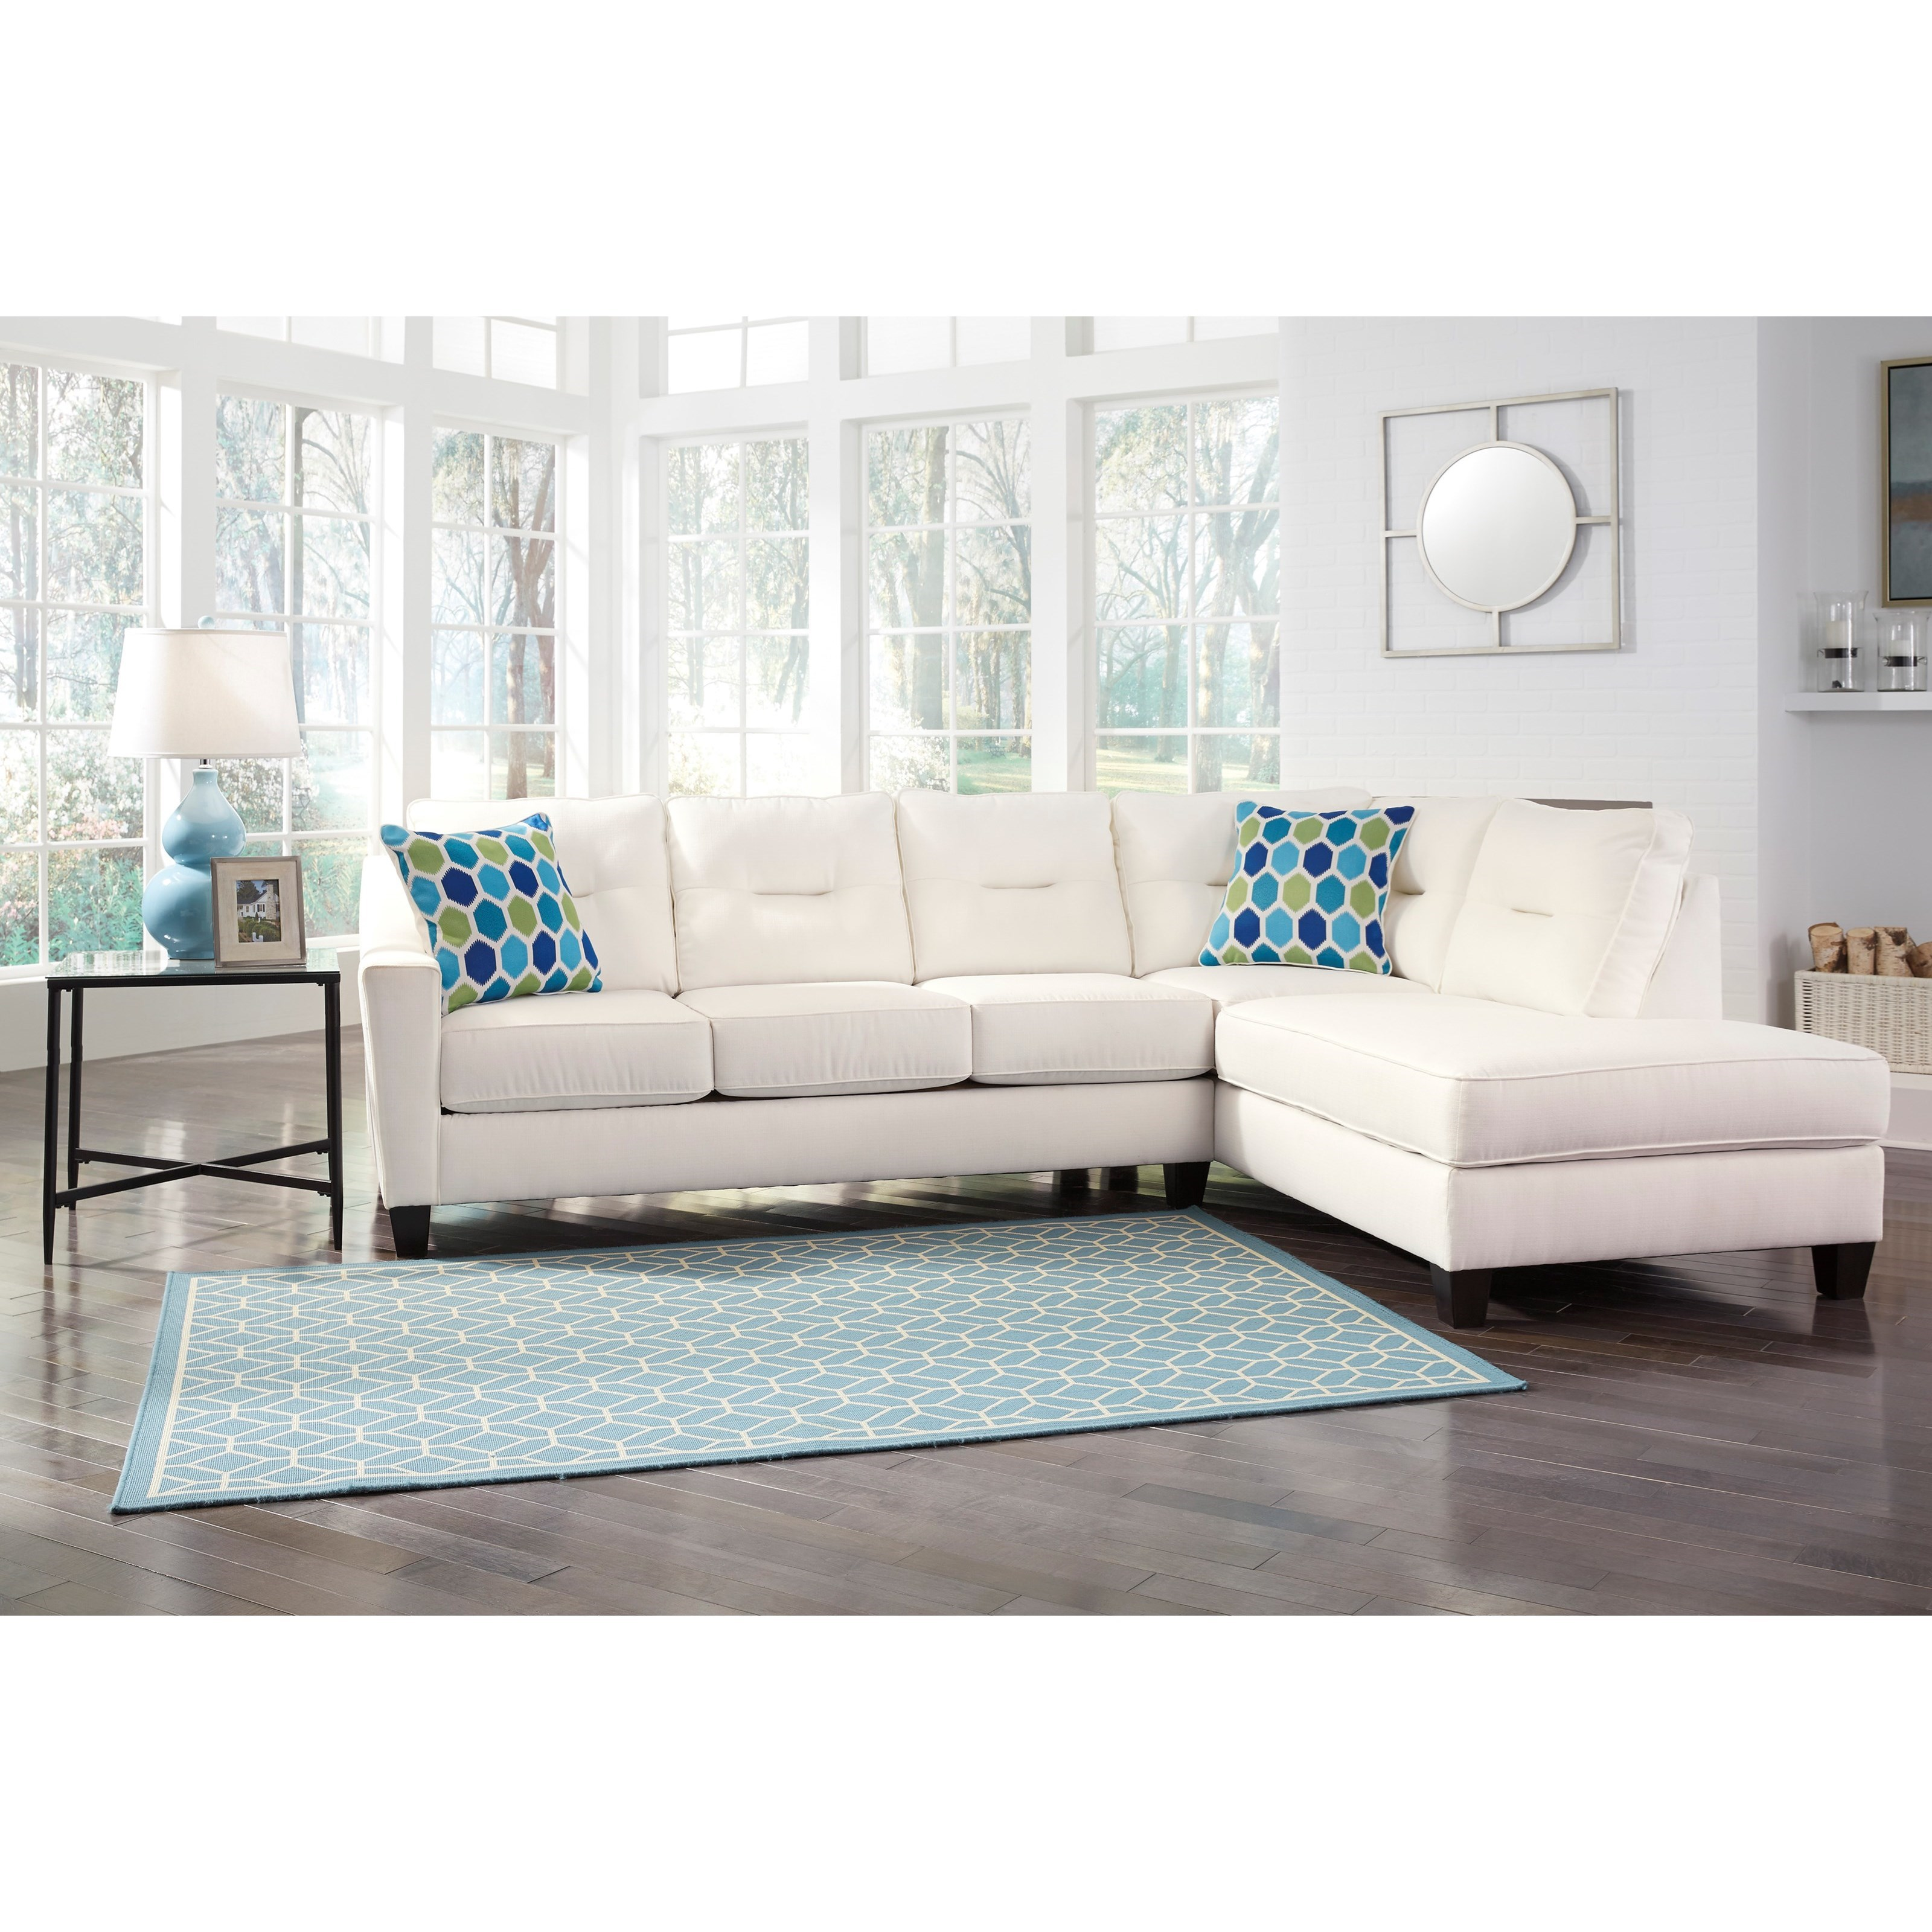 Benchcraft by ashley kirwin nuvella sectional with sleeper for Ashley sofa with chaise